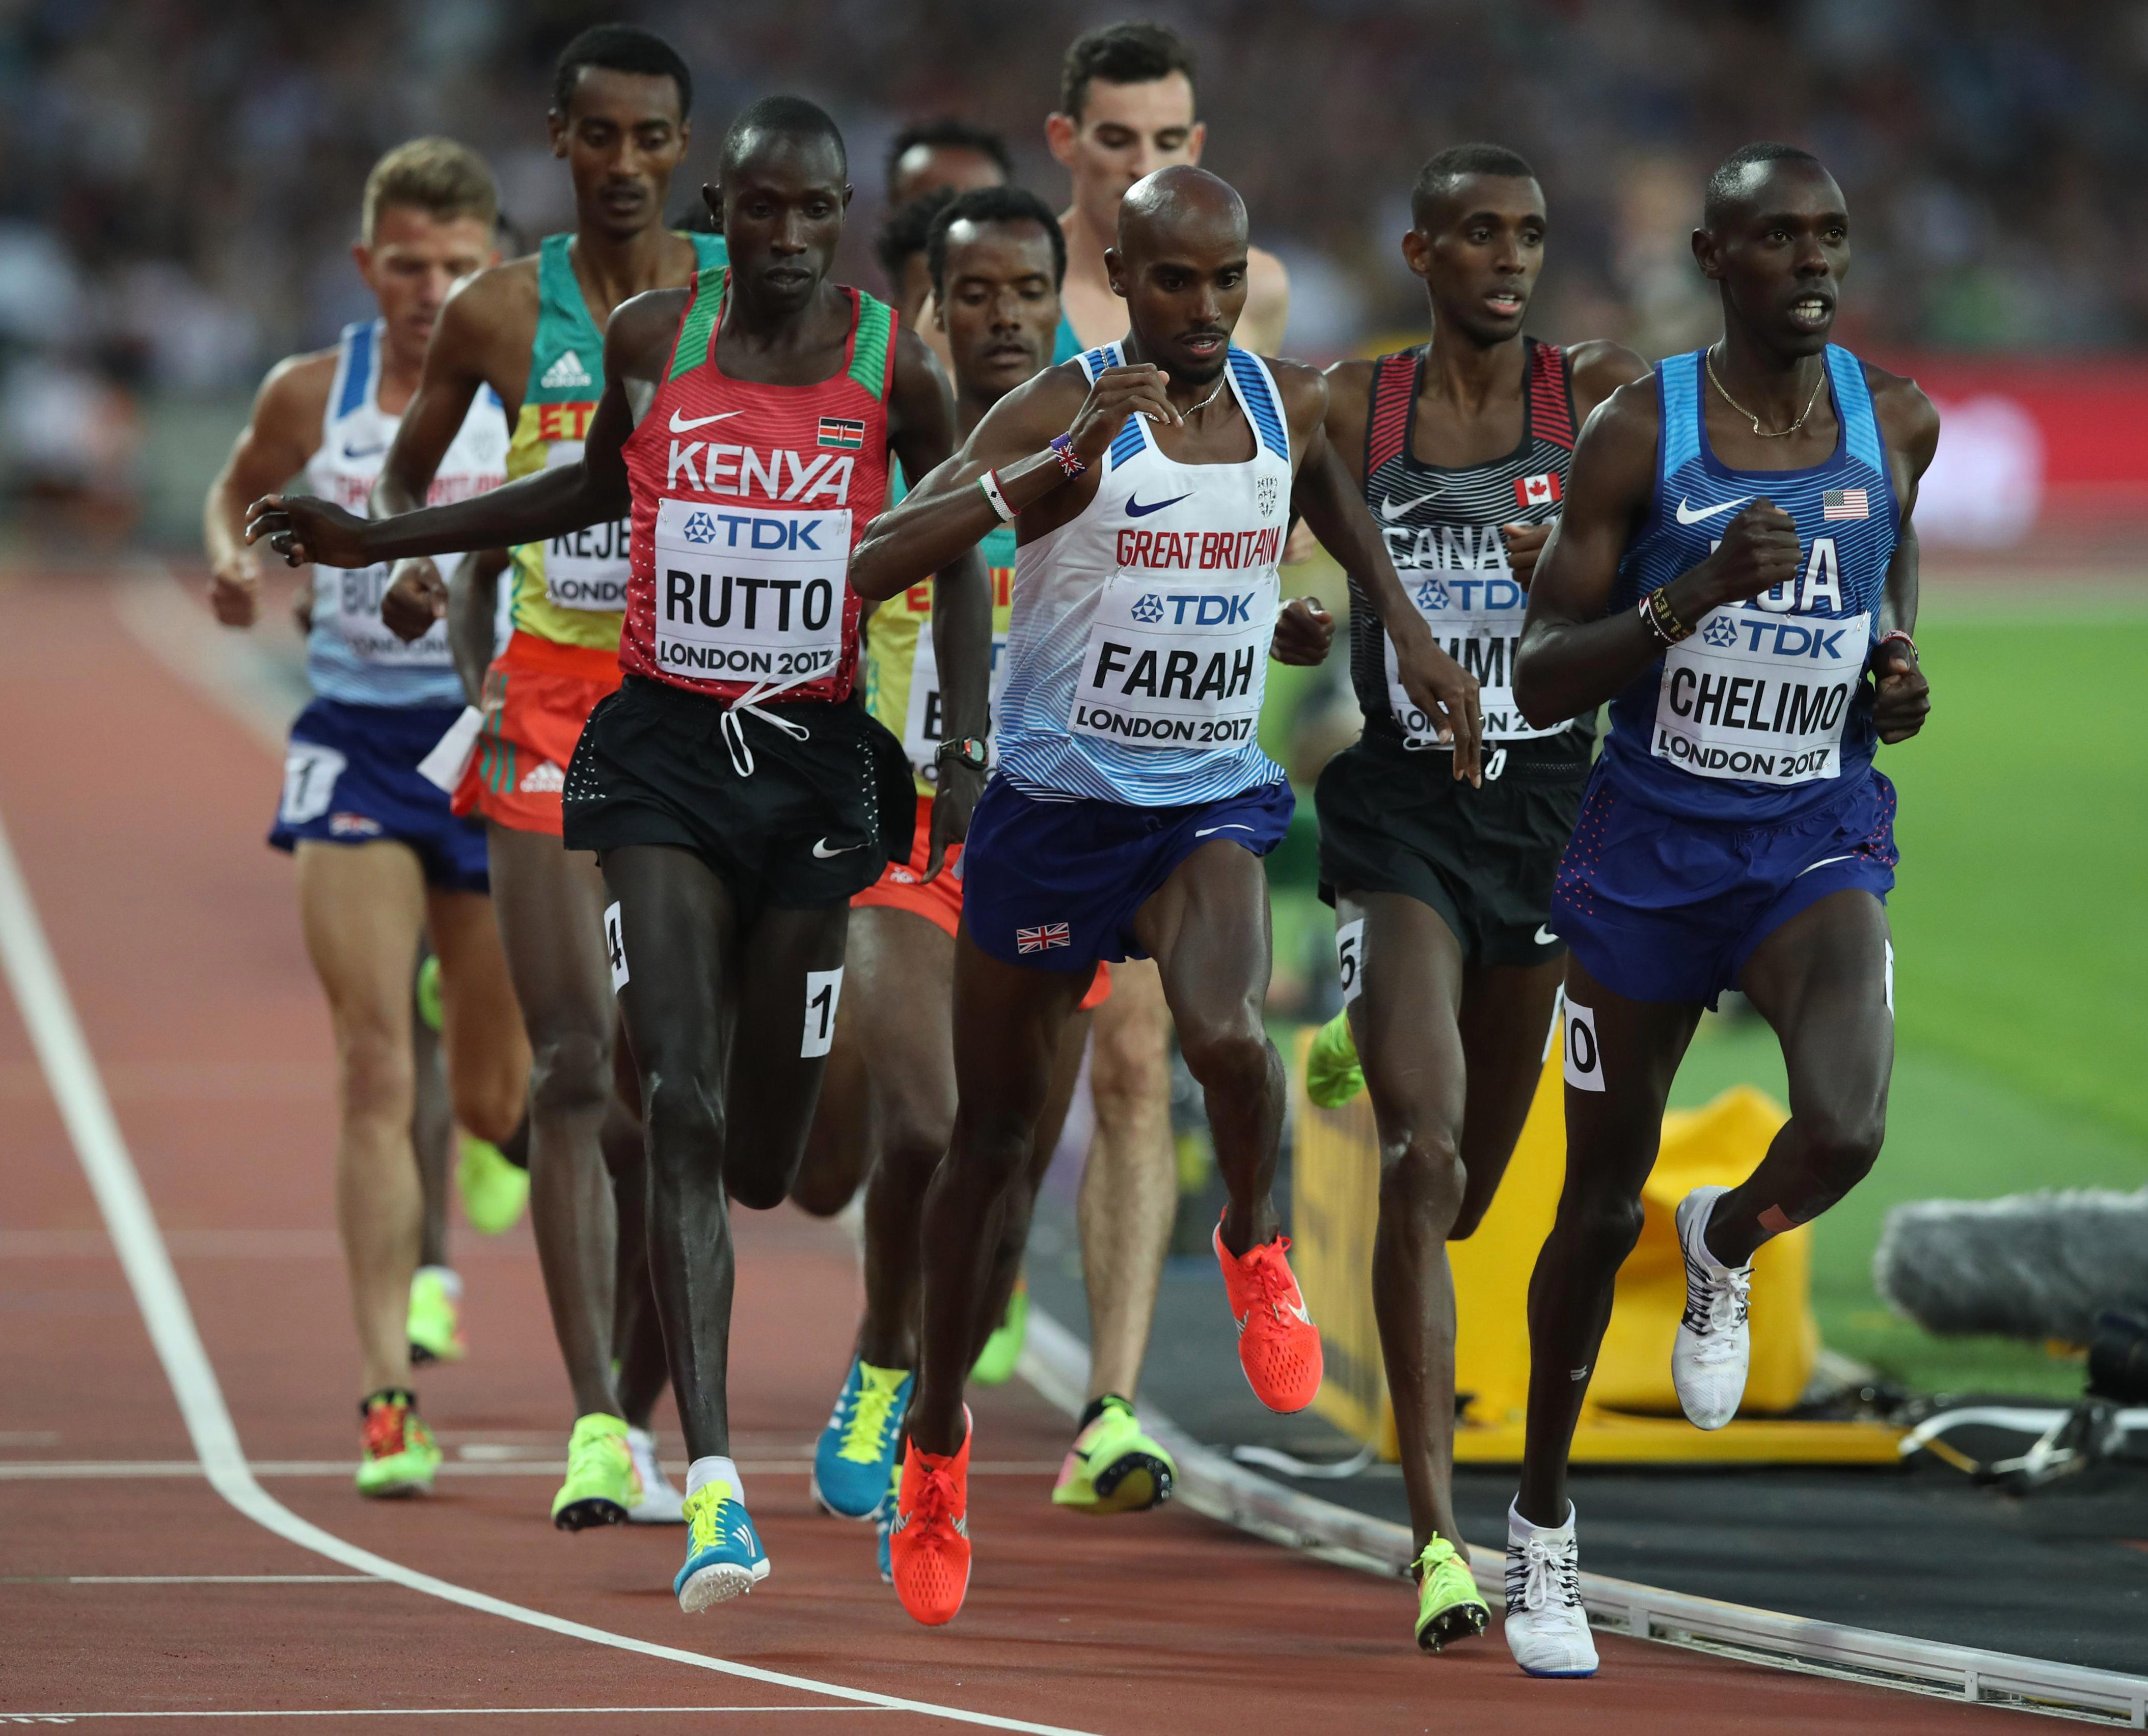 Farah tried tro avoid the jostling by running near the front but he was still forced to regain his balance after a trip from behind